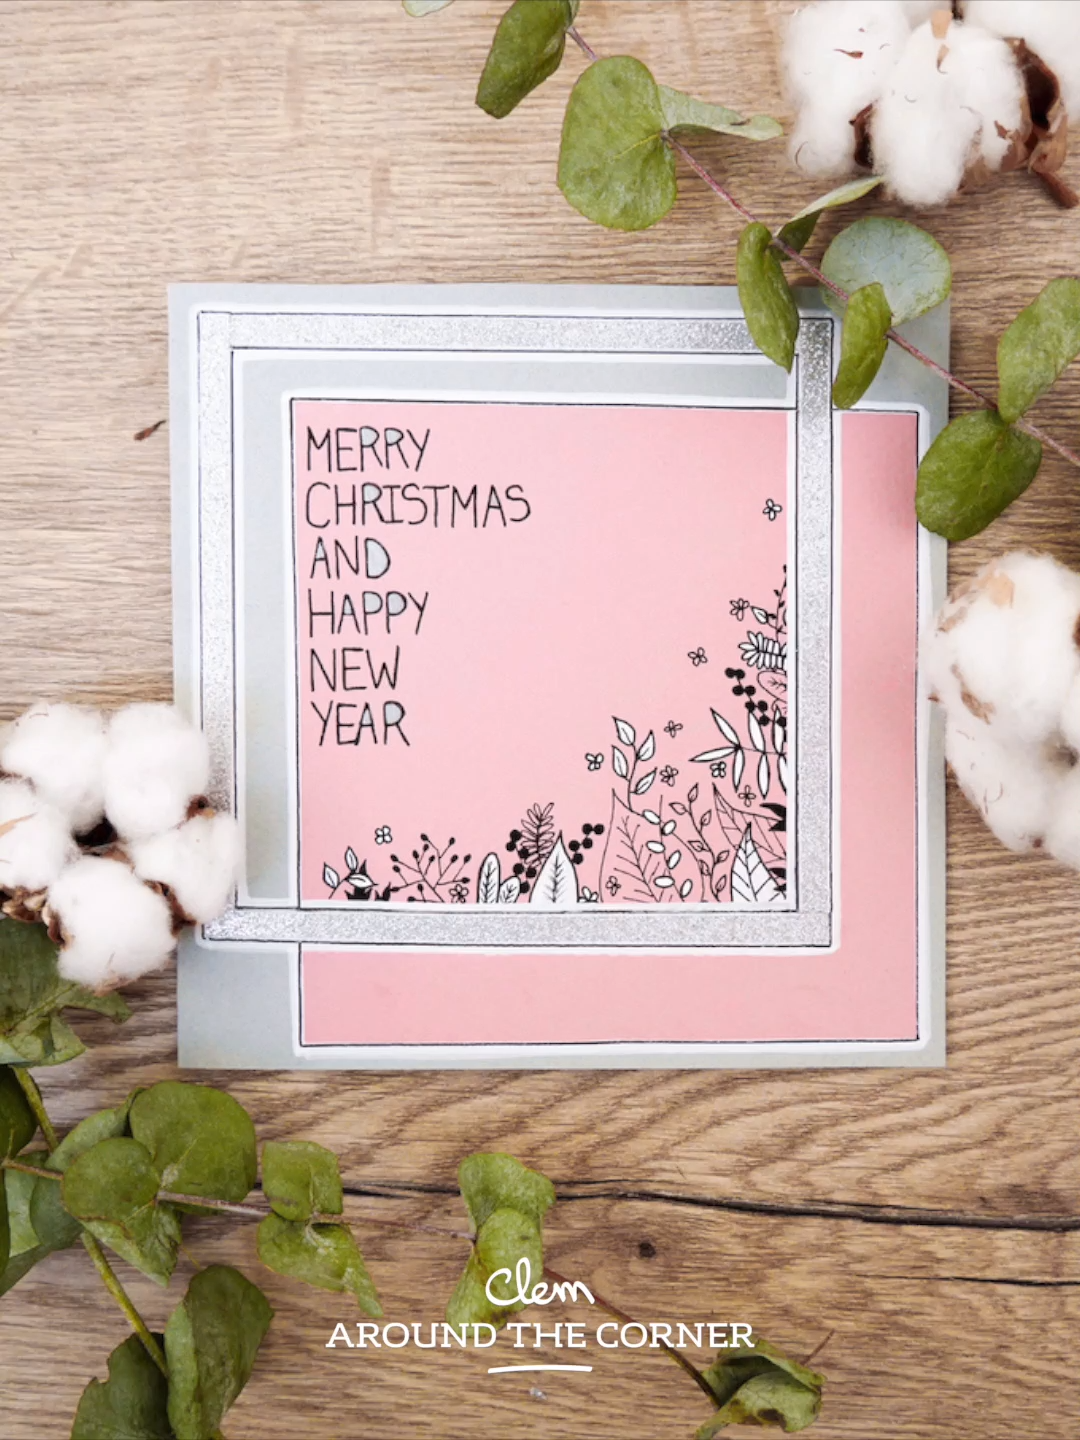 Merry Christmas And Happy New Year Greeting Card Craft For Kids Do It Yourself Best Wishes Card Greeting Card Craft Christmas Cards Drawing Diy Christmas Cards